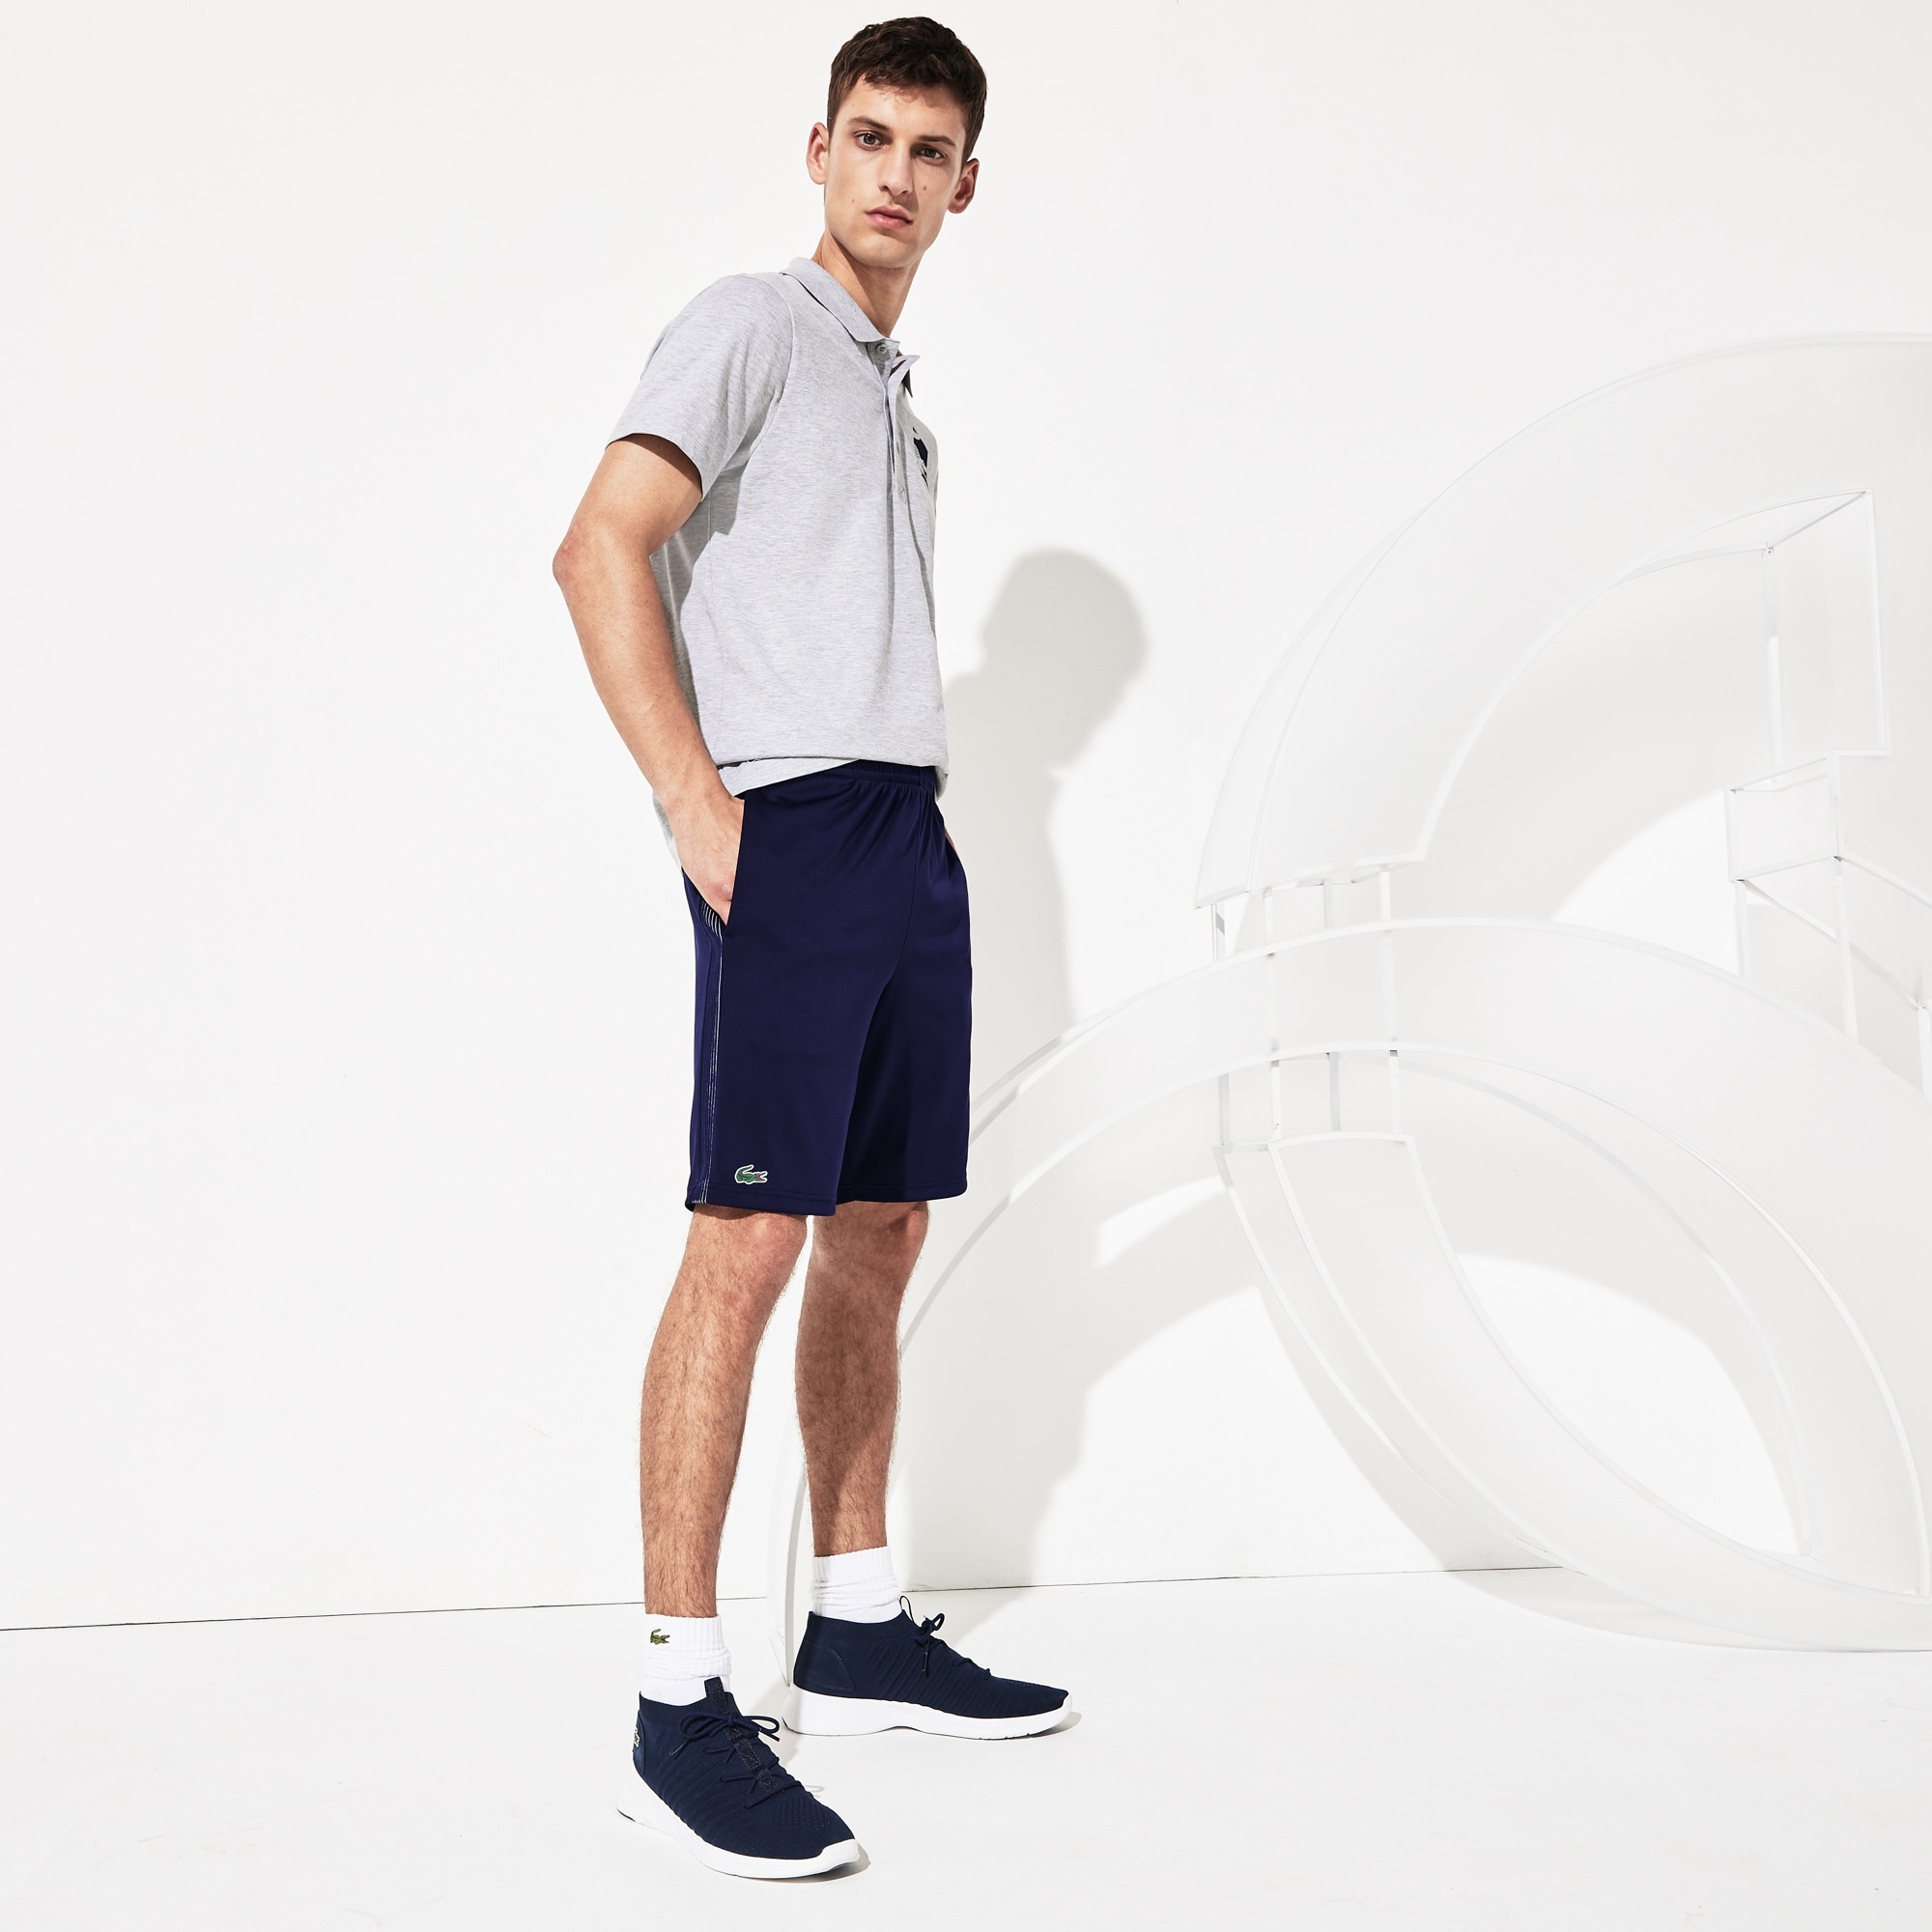 Pantalón Corto De Hombre Lacoste SPORT Novak Djokovic Support With Style - Off Court Collection En Piqué Técnico